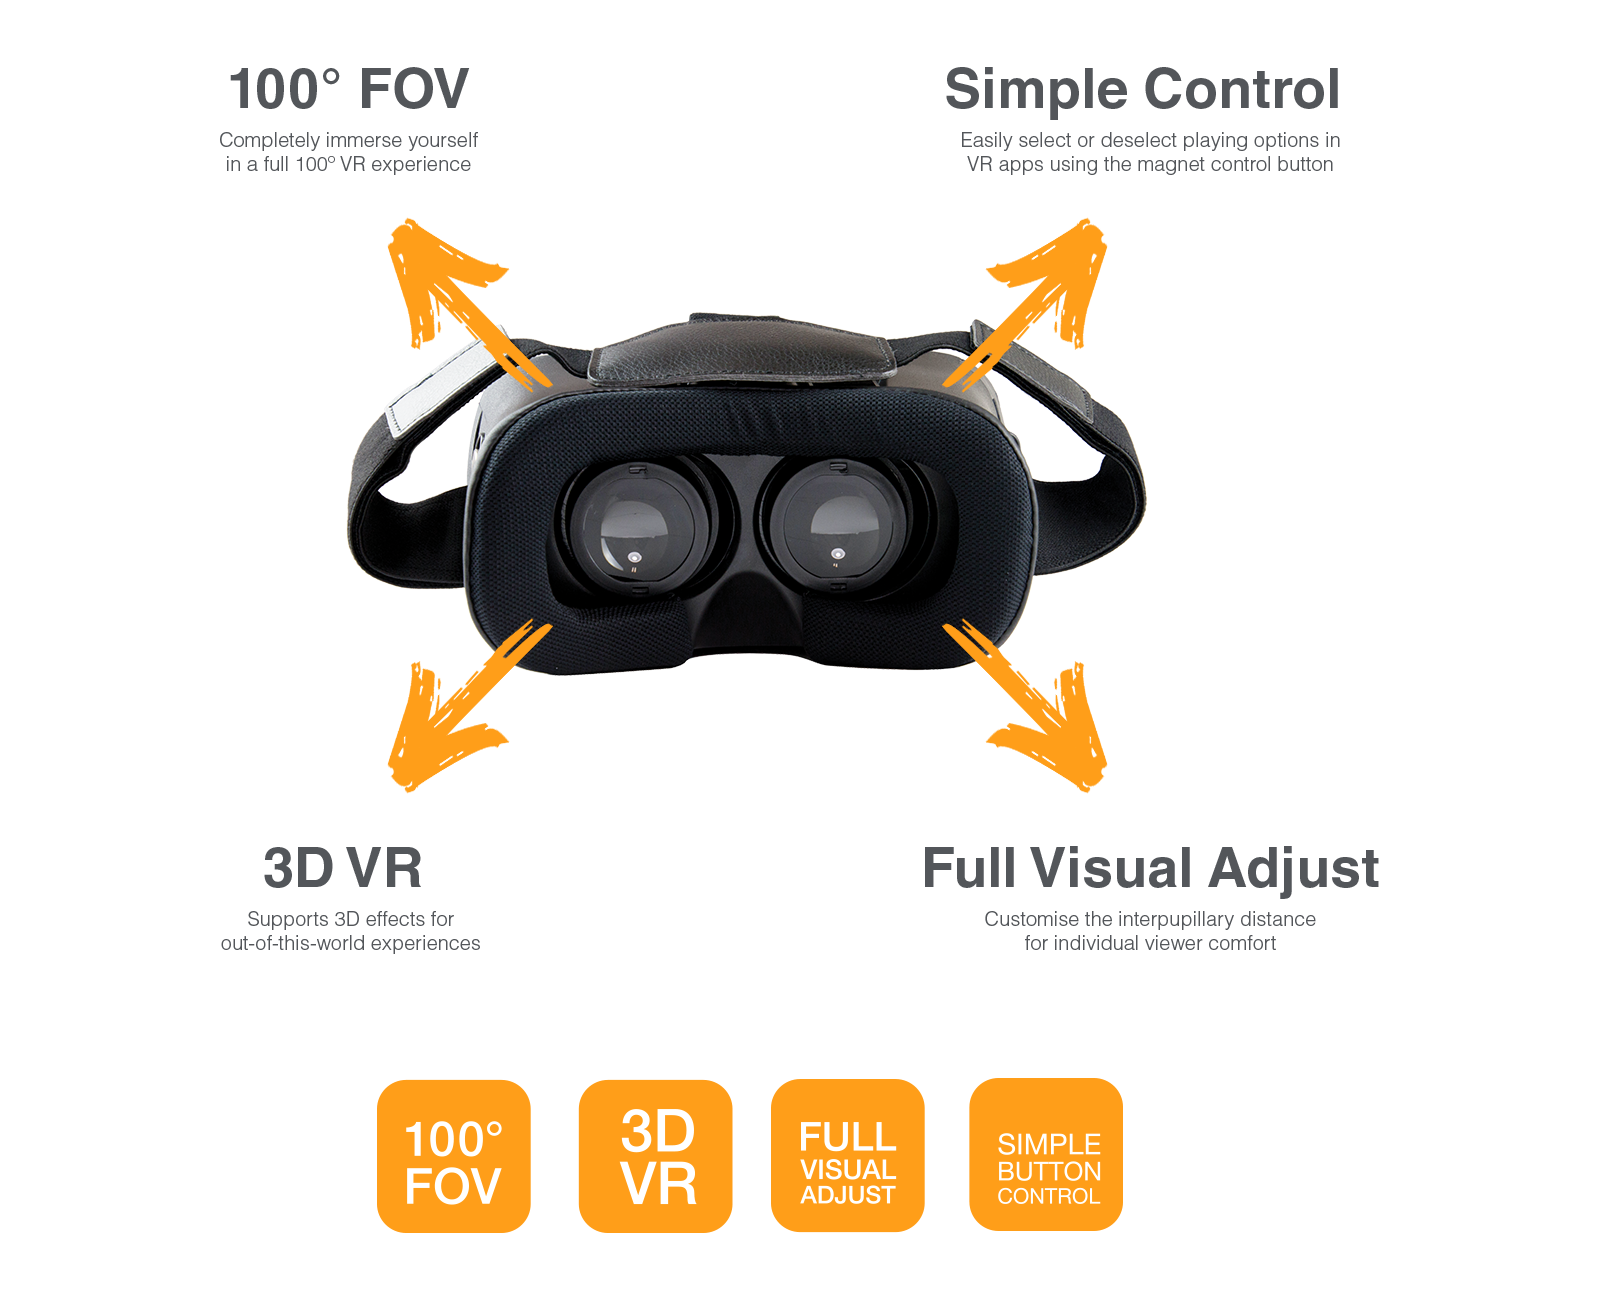 vr-x features